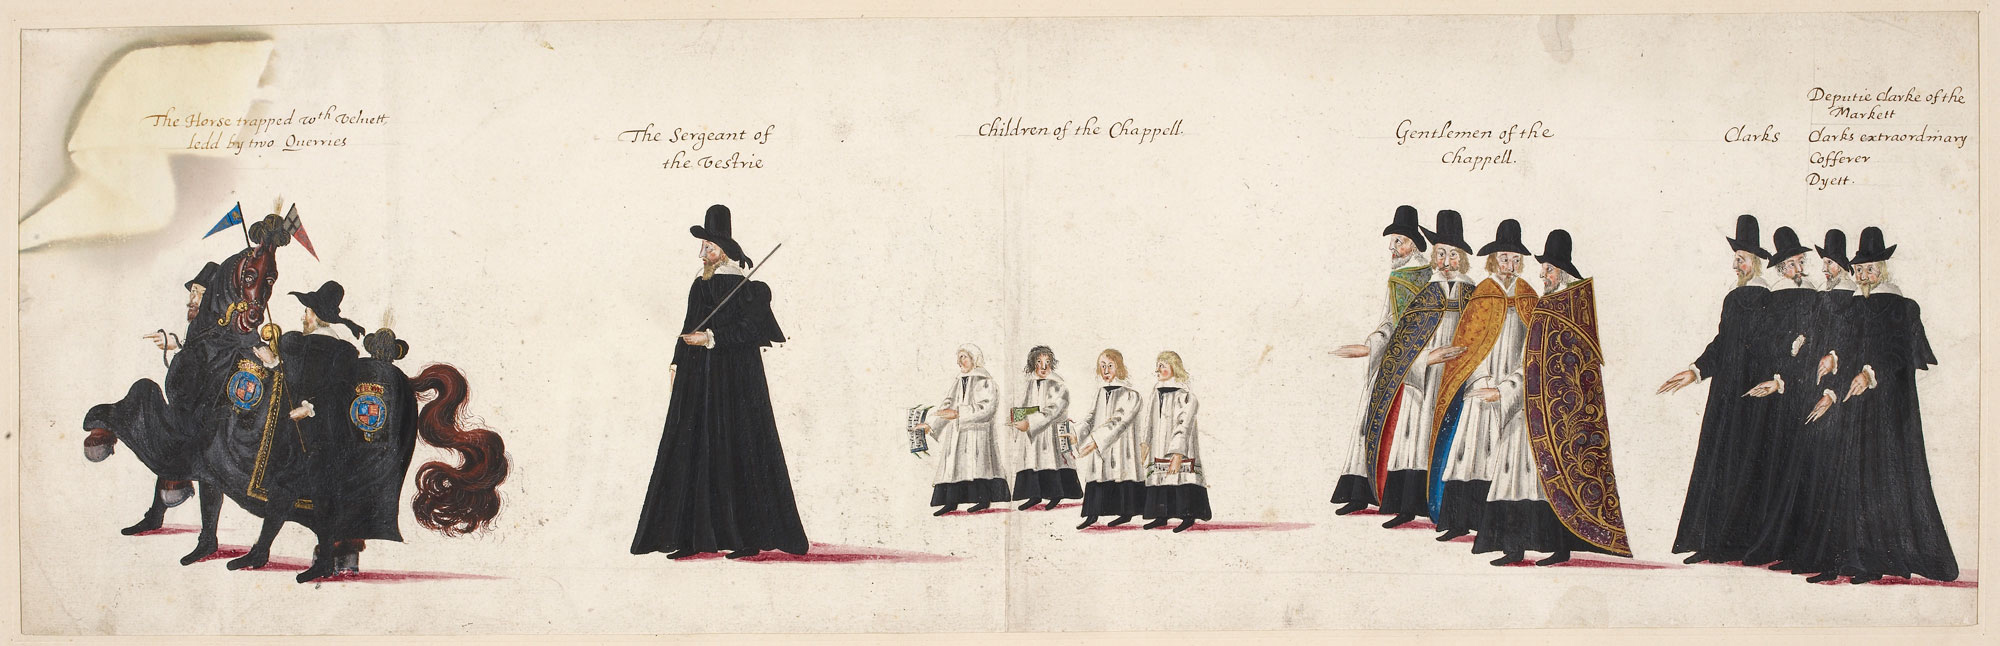 Drawings of the funeral procession of Elizabeth 1